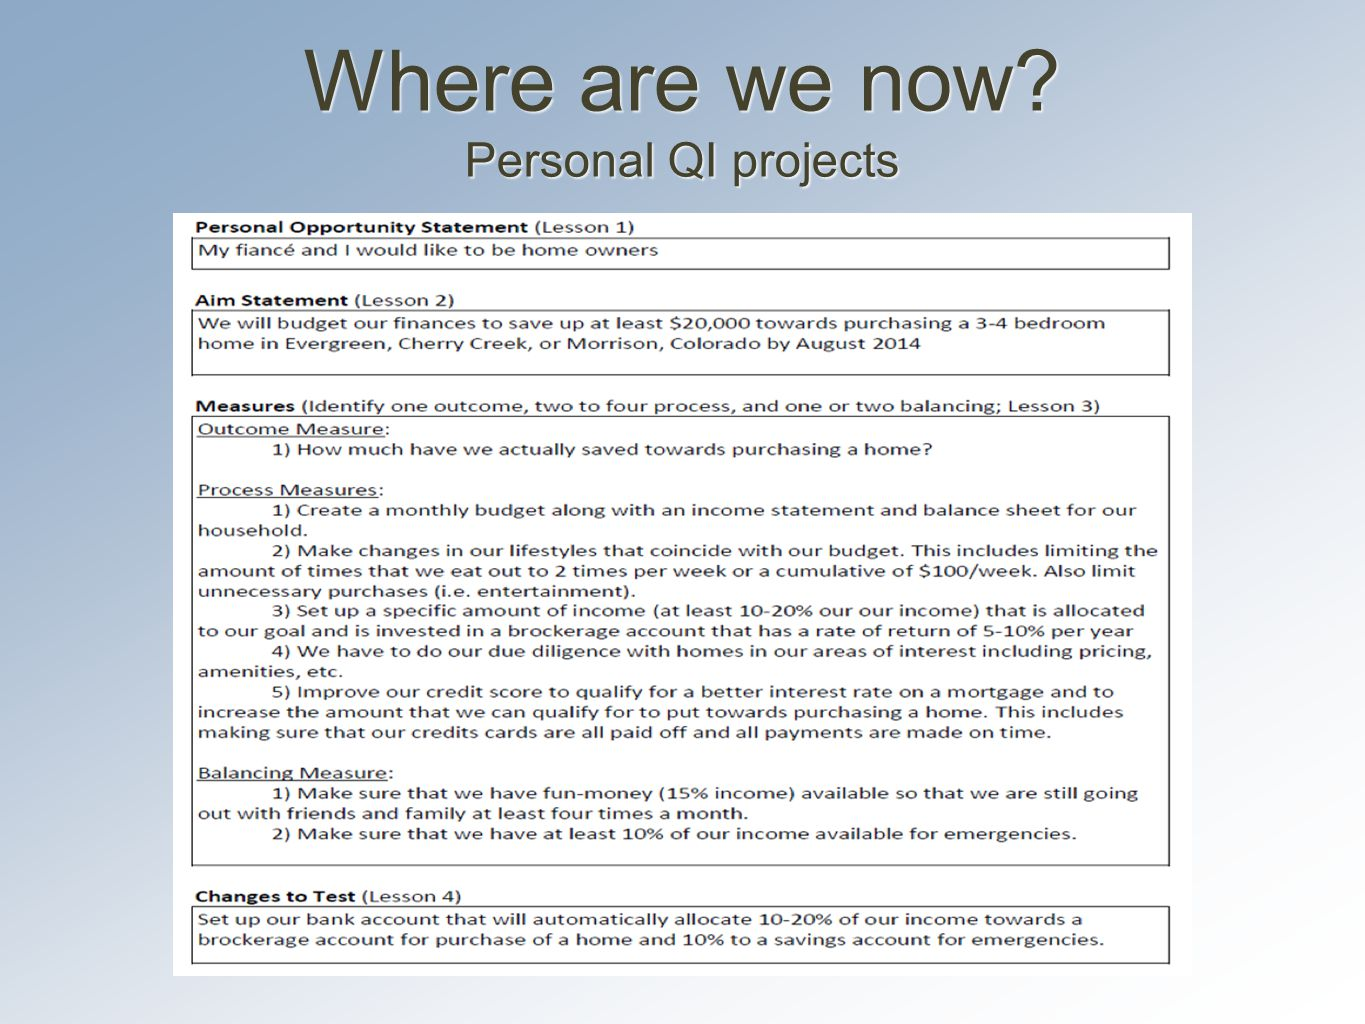 Where are we now Personal QI projects